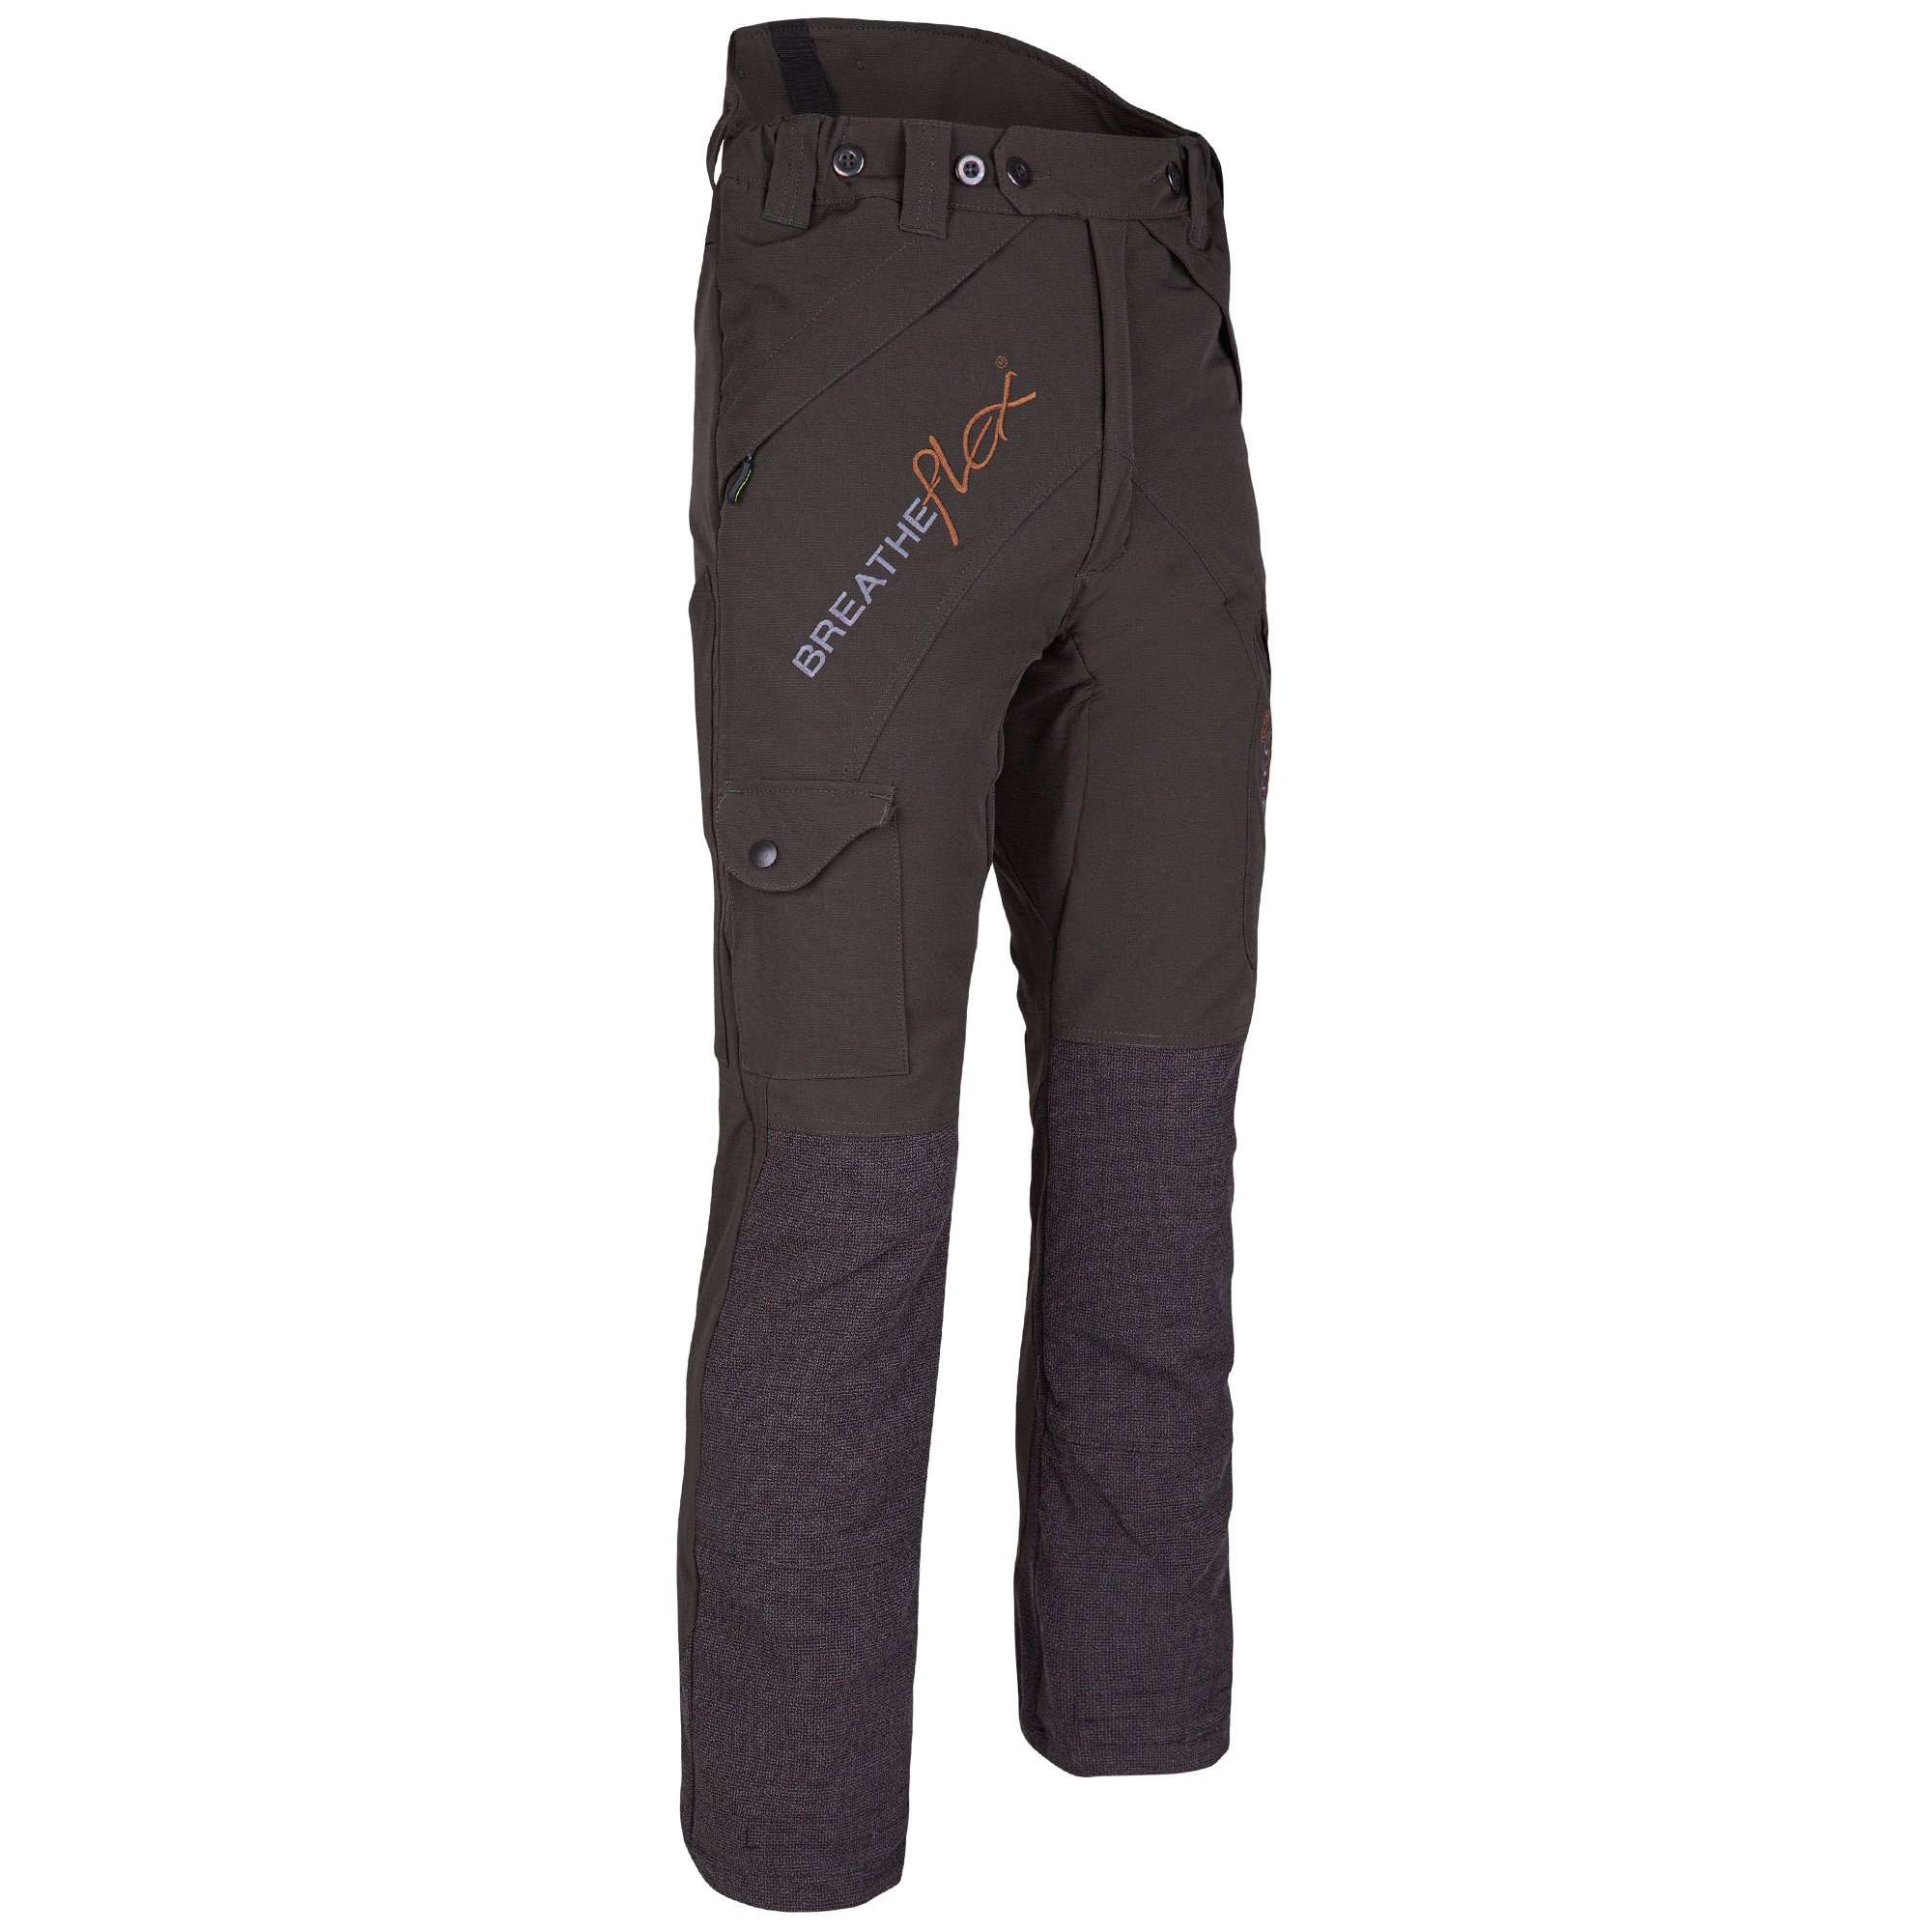 AT4050 Breatheflex Type C Class 1 Chainsaw Trousers - Olive - Arbortec Forestwear